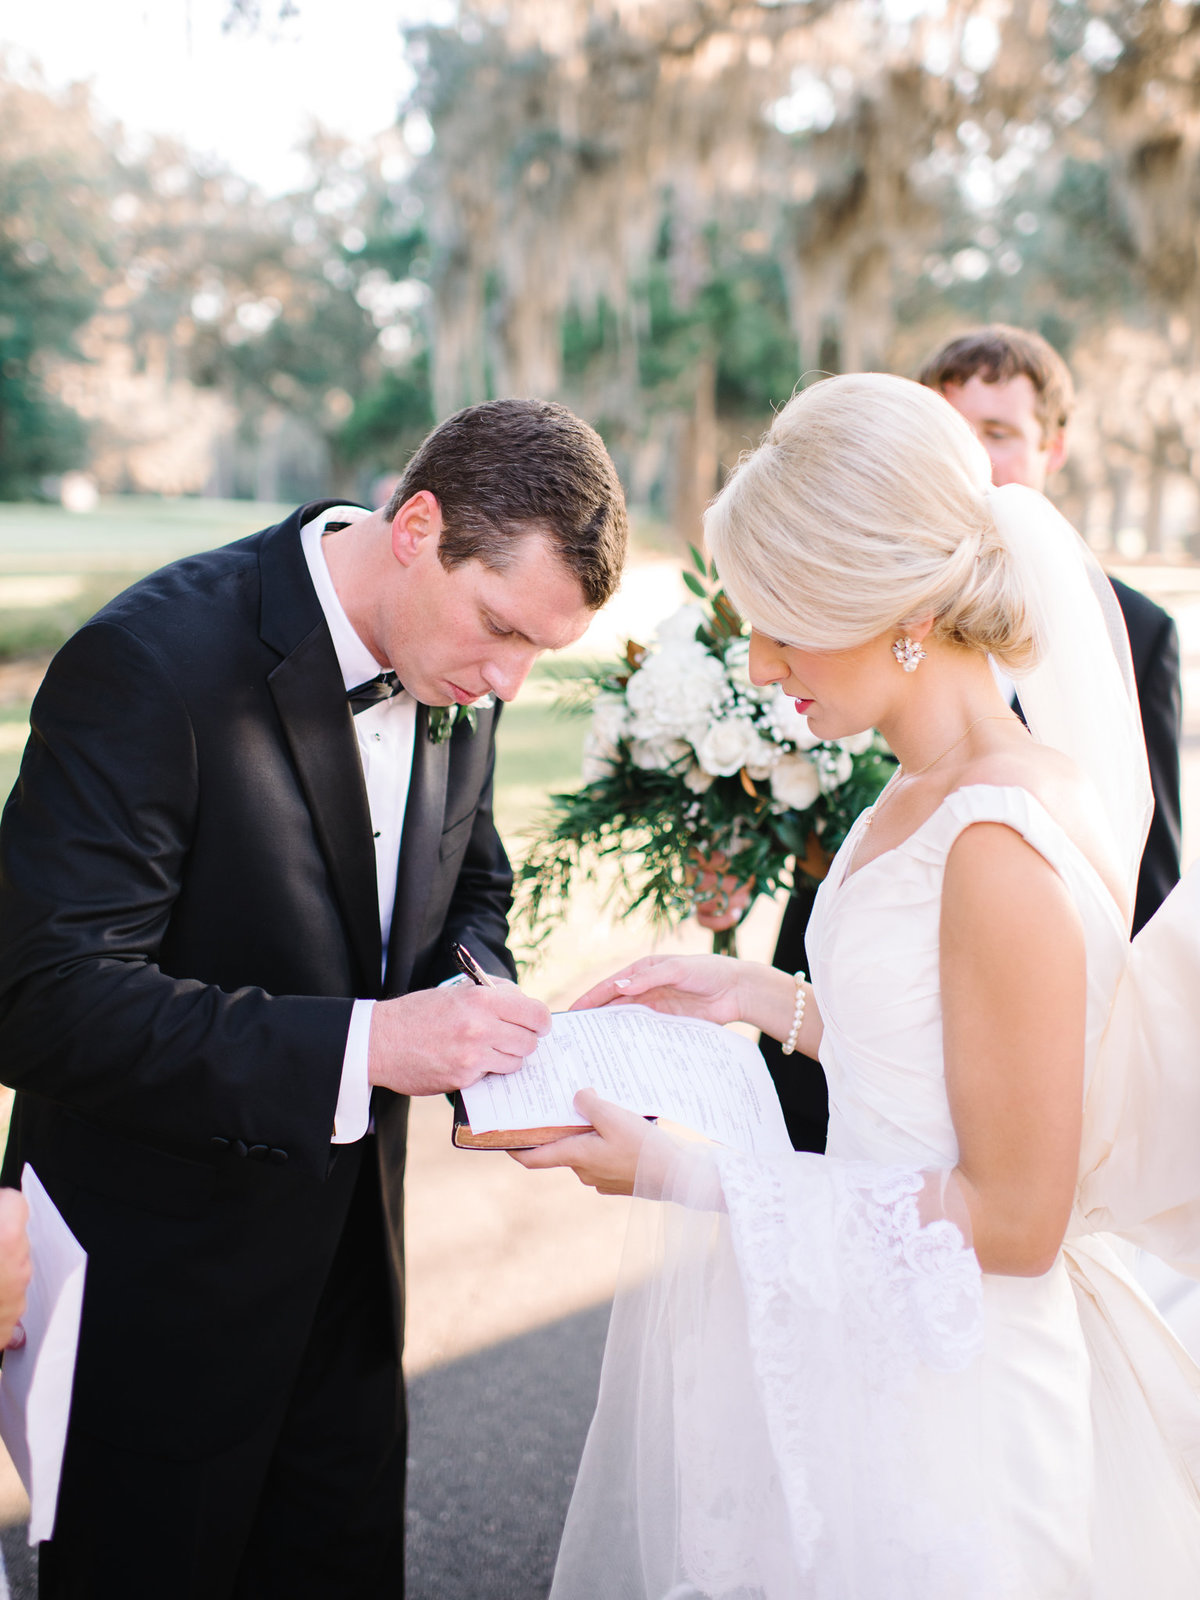 Caledonia Golf & Fish Club Wedding Pictures by Pasha Belman in Pawleys Island